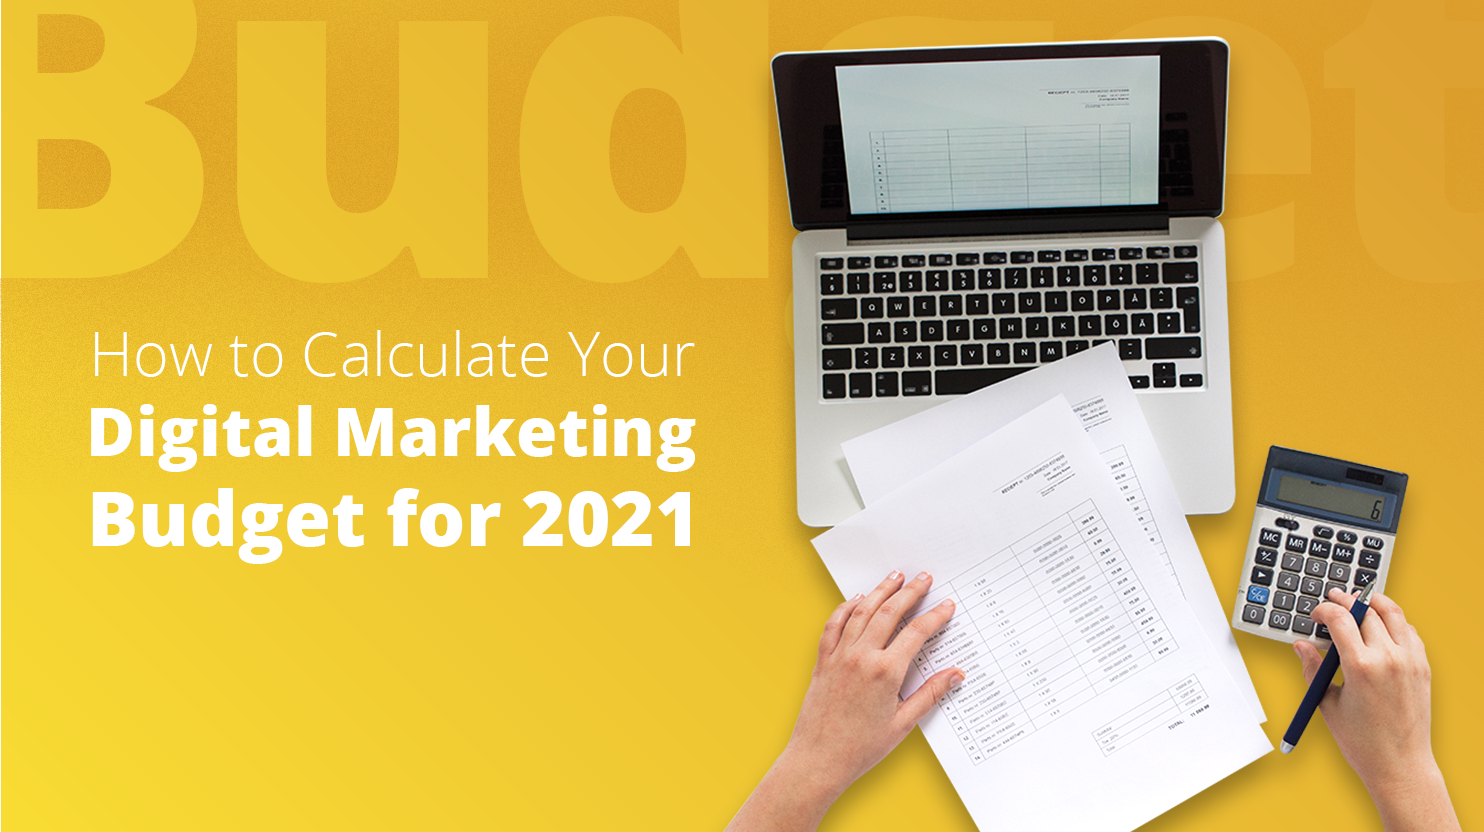 """How to calculate digital marketing budget for 2021"" written in white over mustard yellow background. To the right a picture of a laptop, some papers, and a calculator."